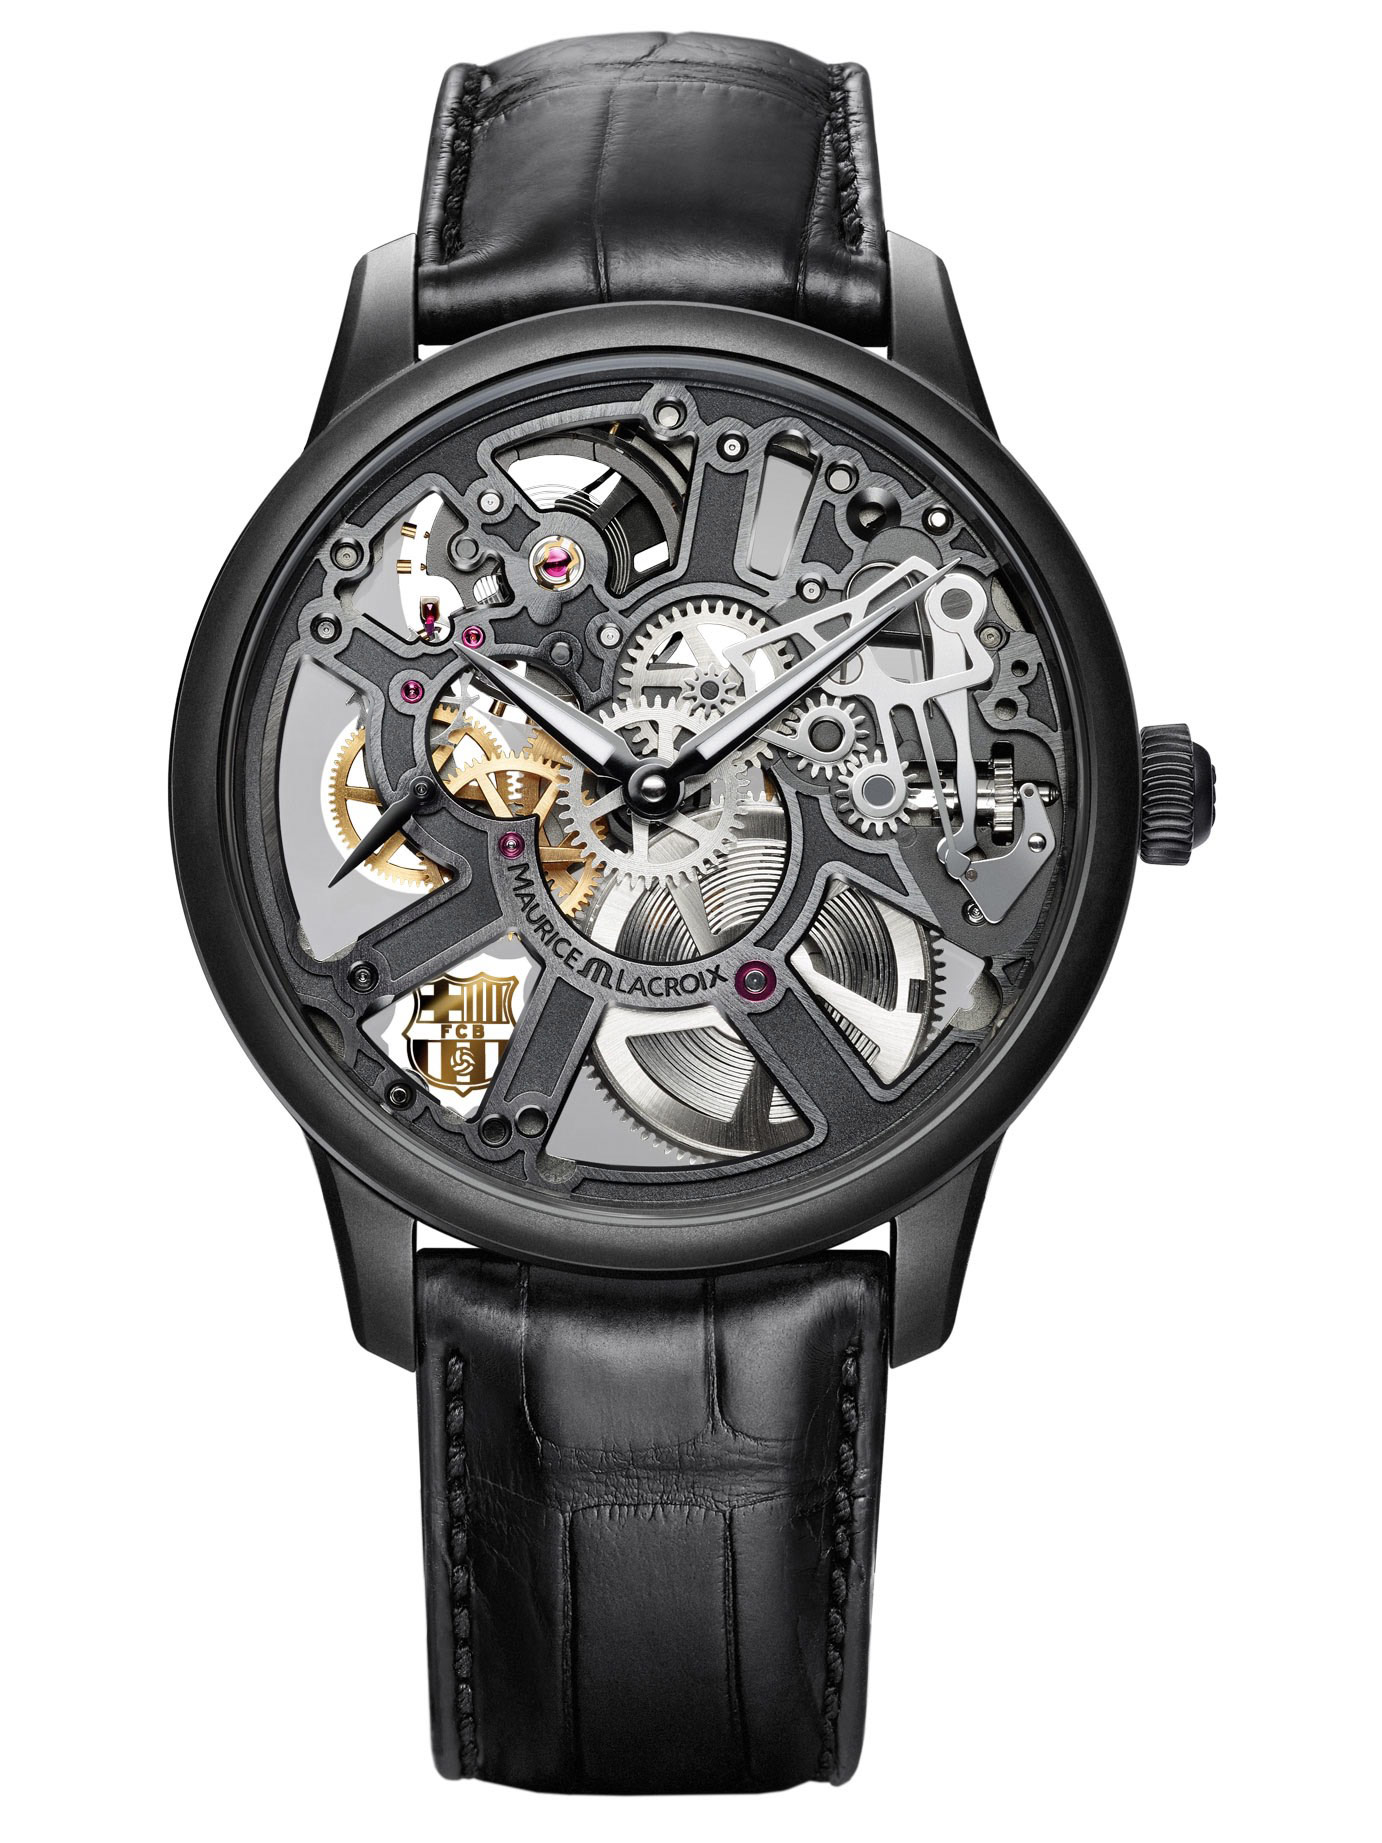 Maurice Lacroix Masterpiece SQUELETTE - FC BARCELONA MP7228-PVB01-002